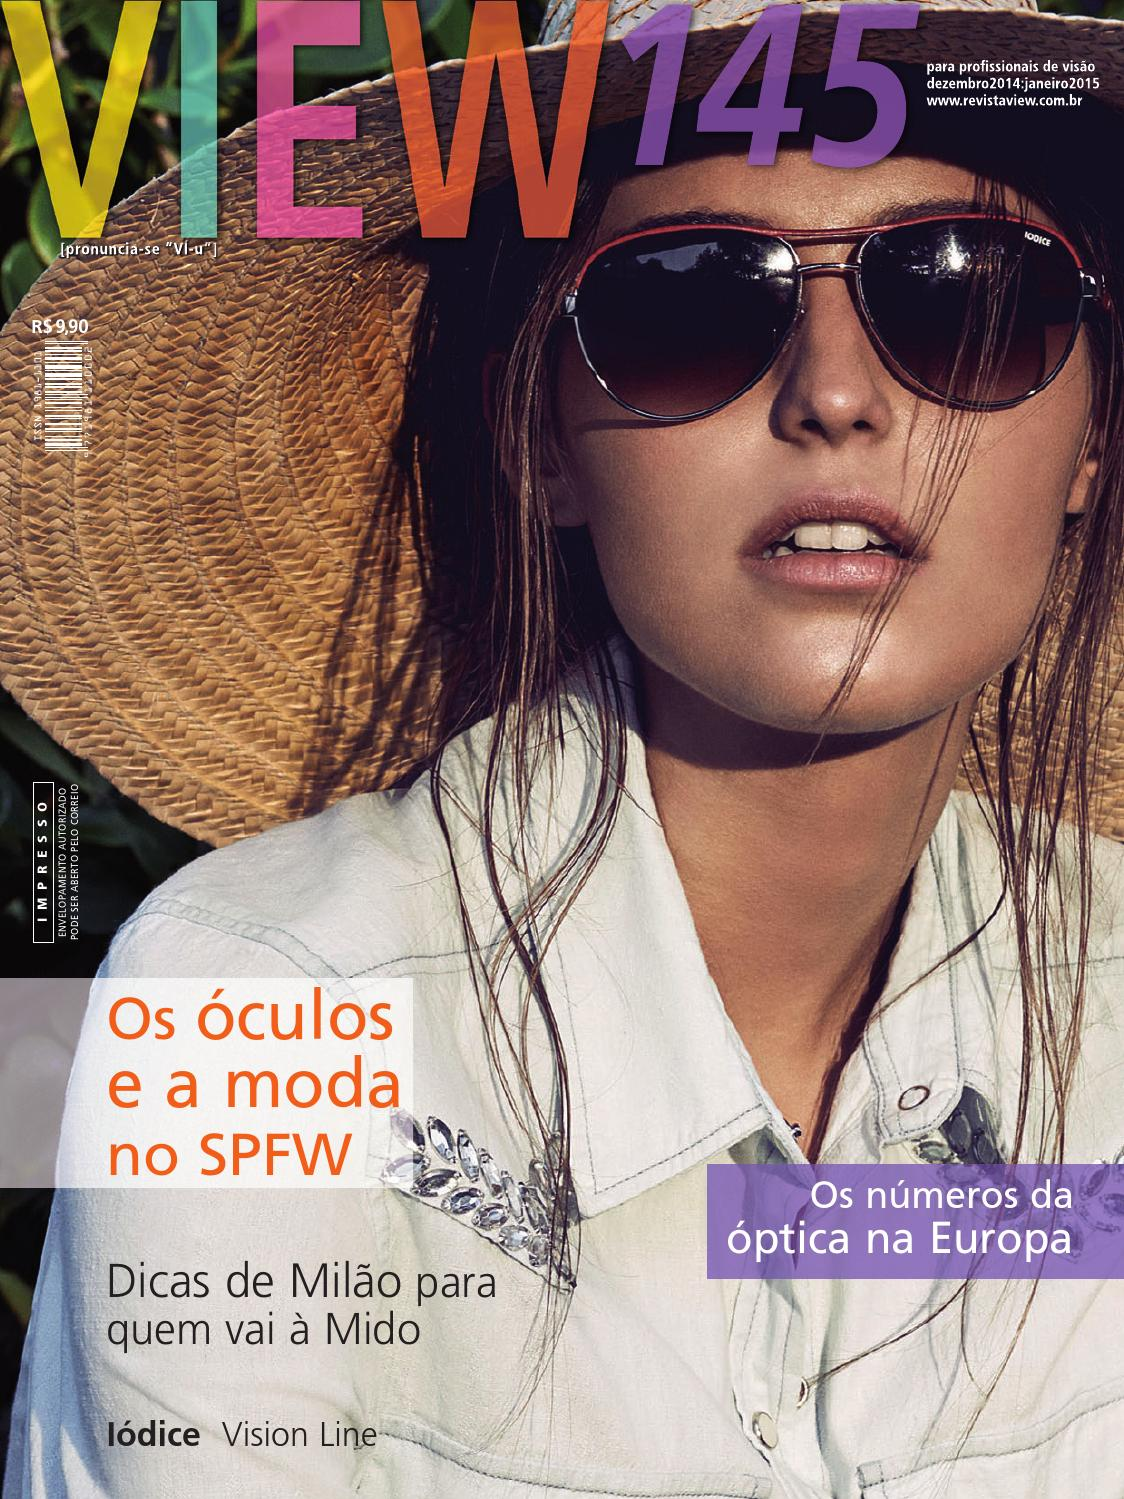 6caa28870a83a VIEW 145 by Revista VIEW - issuu